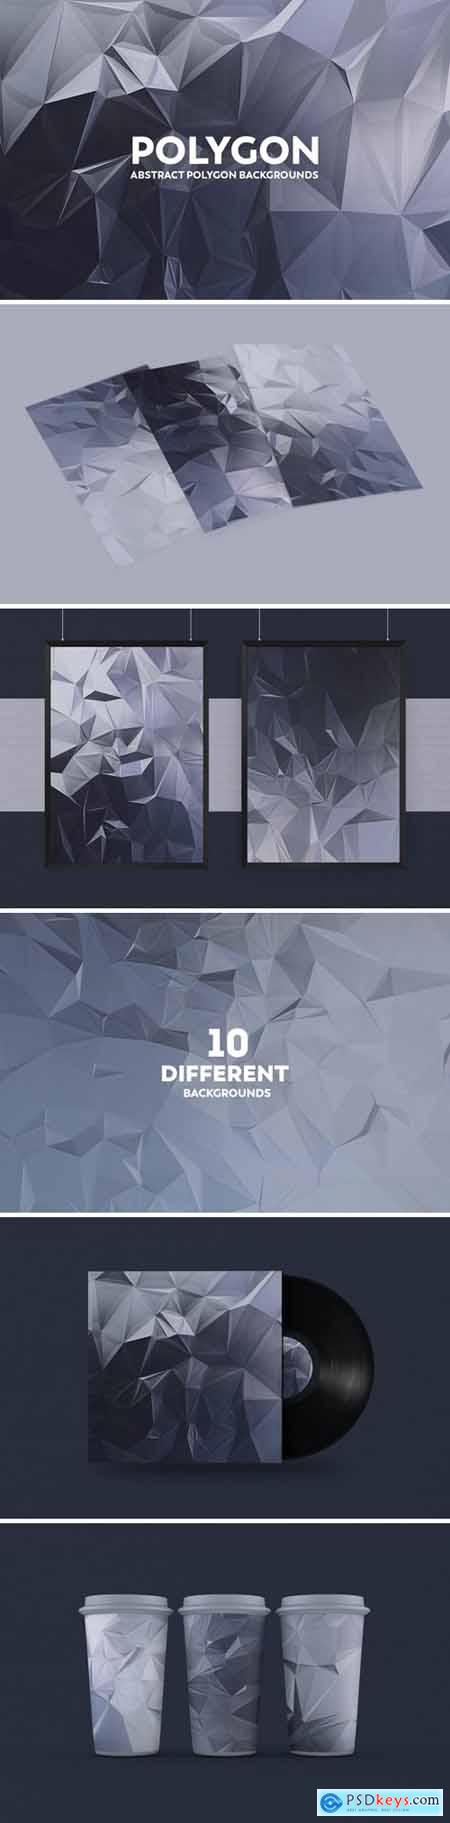 Abstract Polygon Backgrounds ZVABQ37